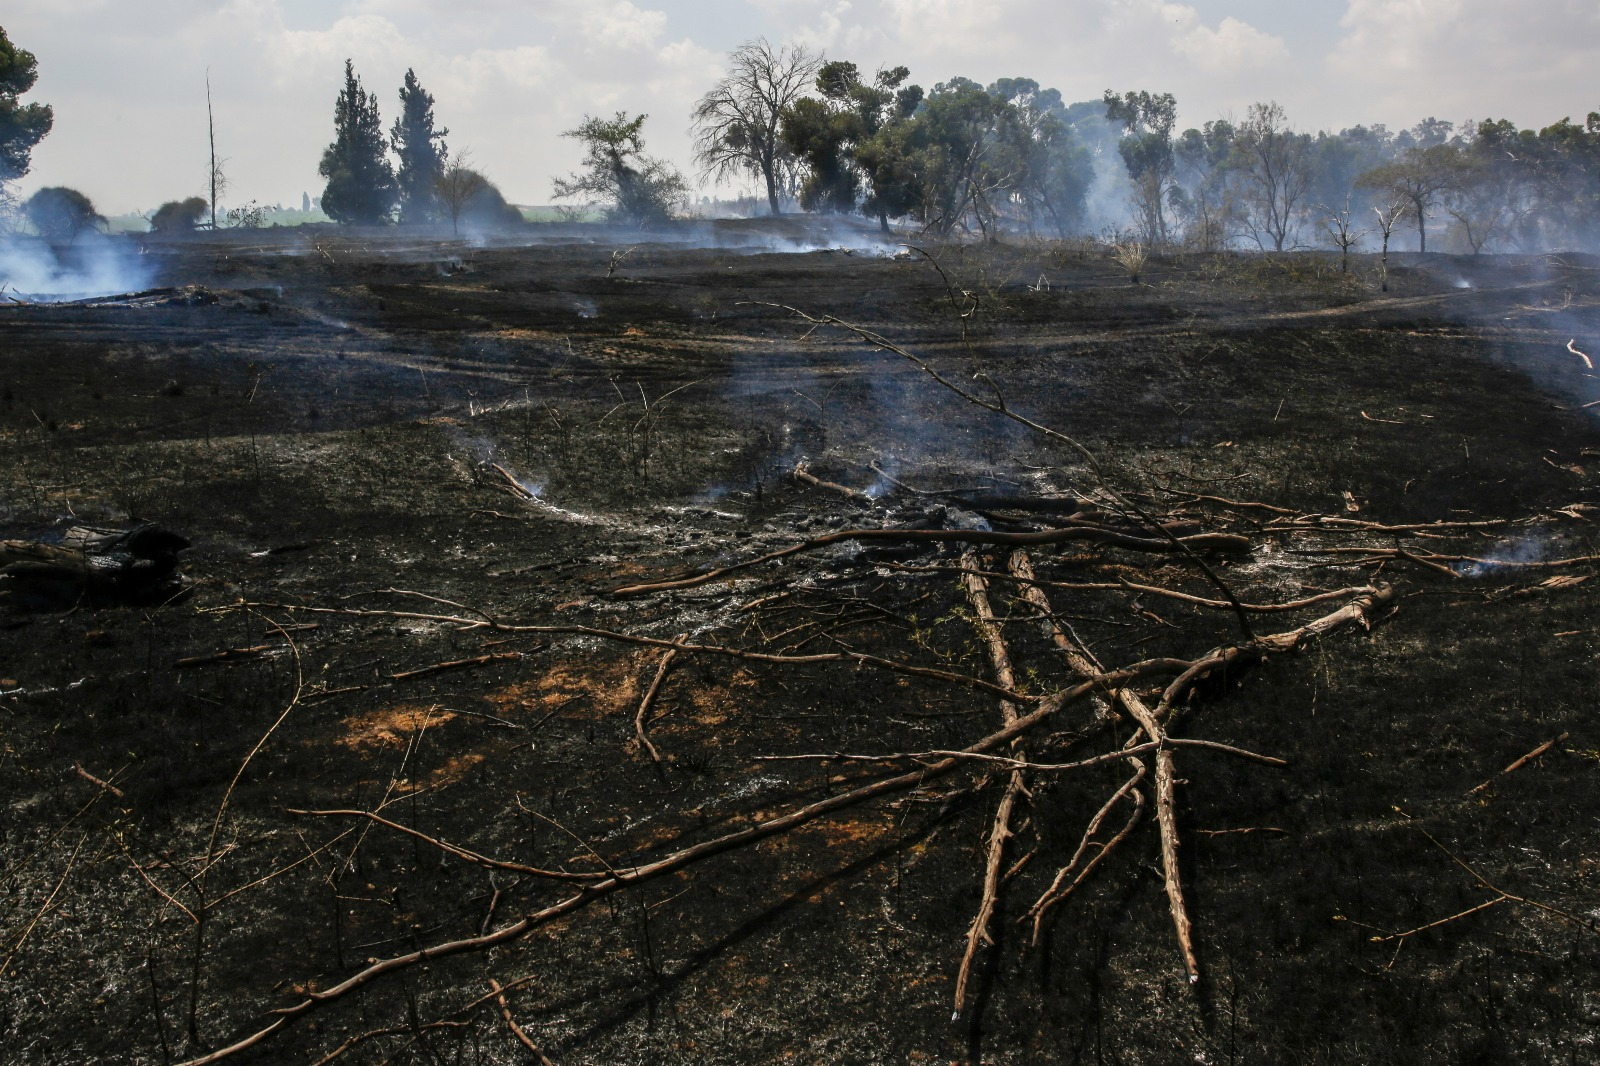 Land in southern Israel near the Gaza border burnt by incendiary kites sent from Gaza